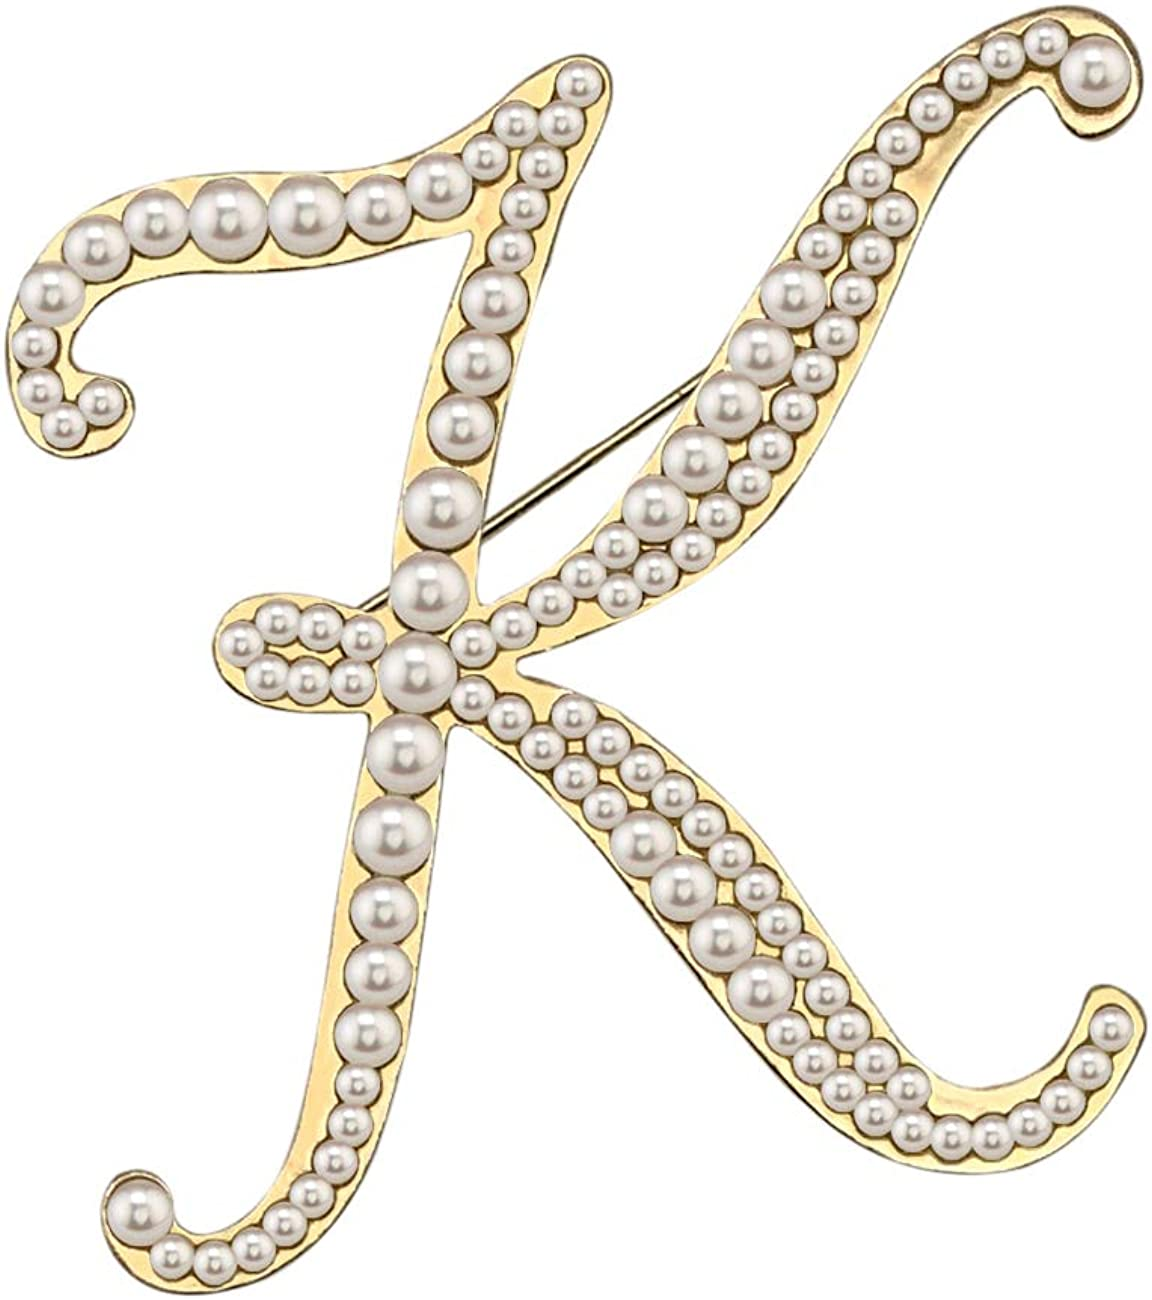 XGALBLA Alphabet Letters(A-Z) Plated Metal Simulated Pearl Lapel Pin Brooches Collar for Women Girls(Gold Tone)